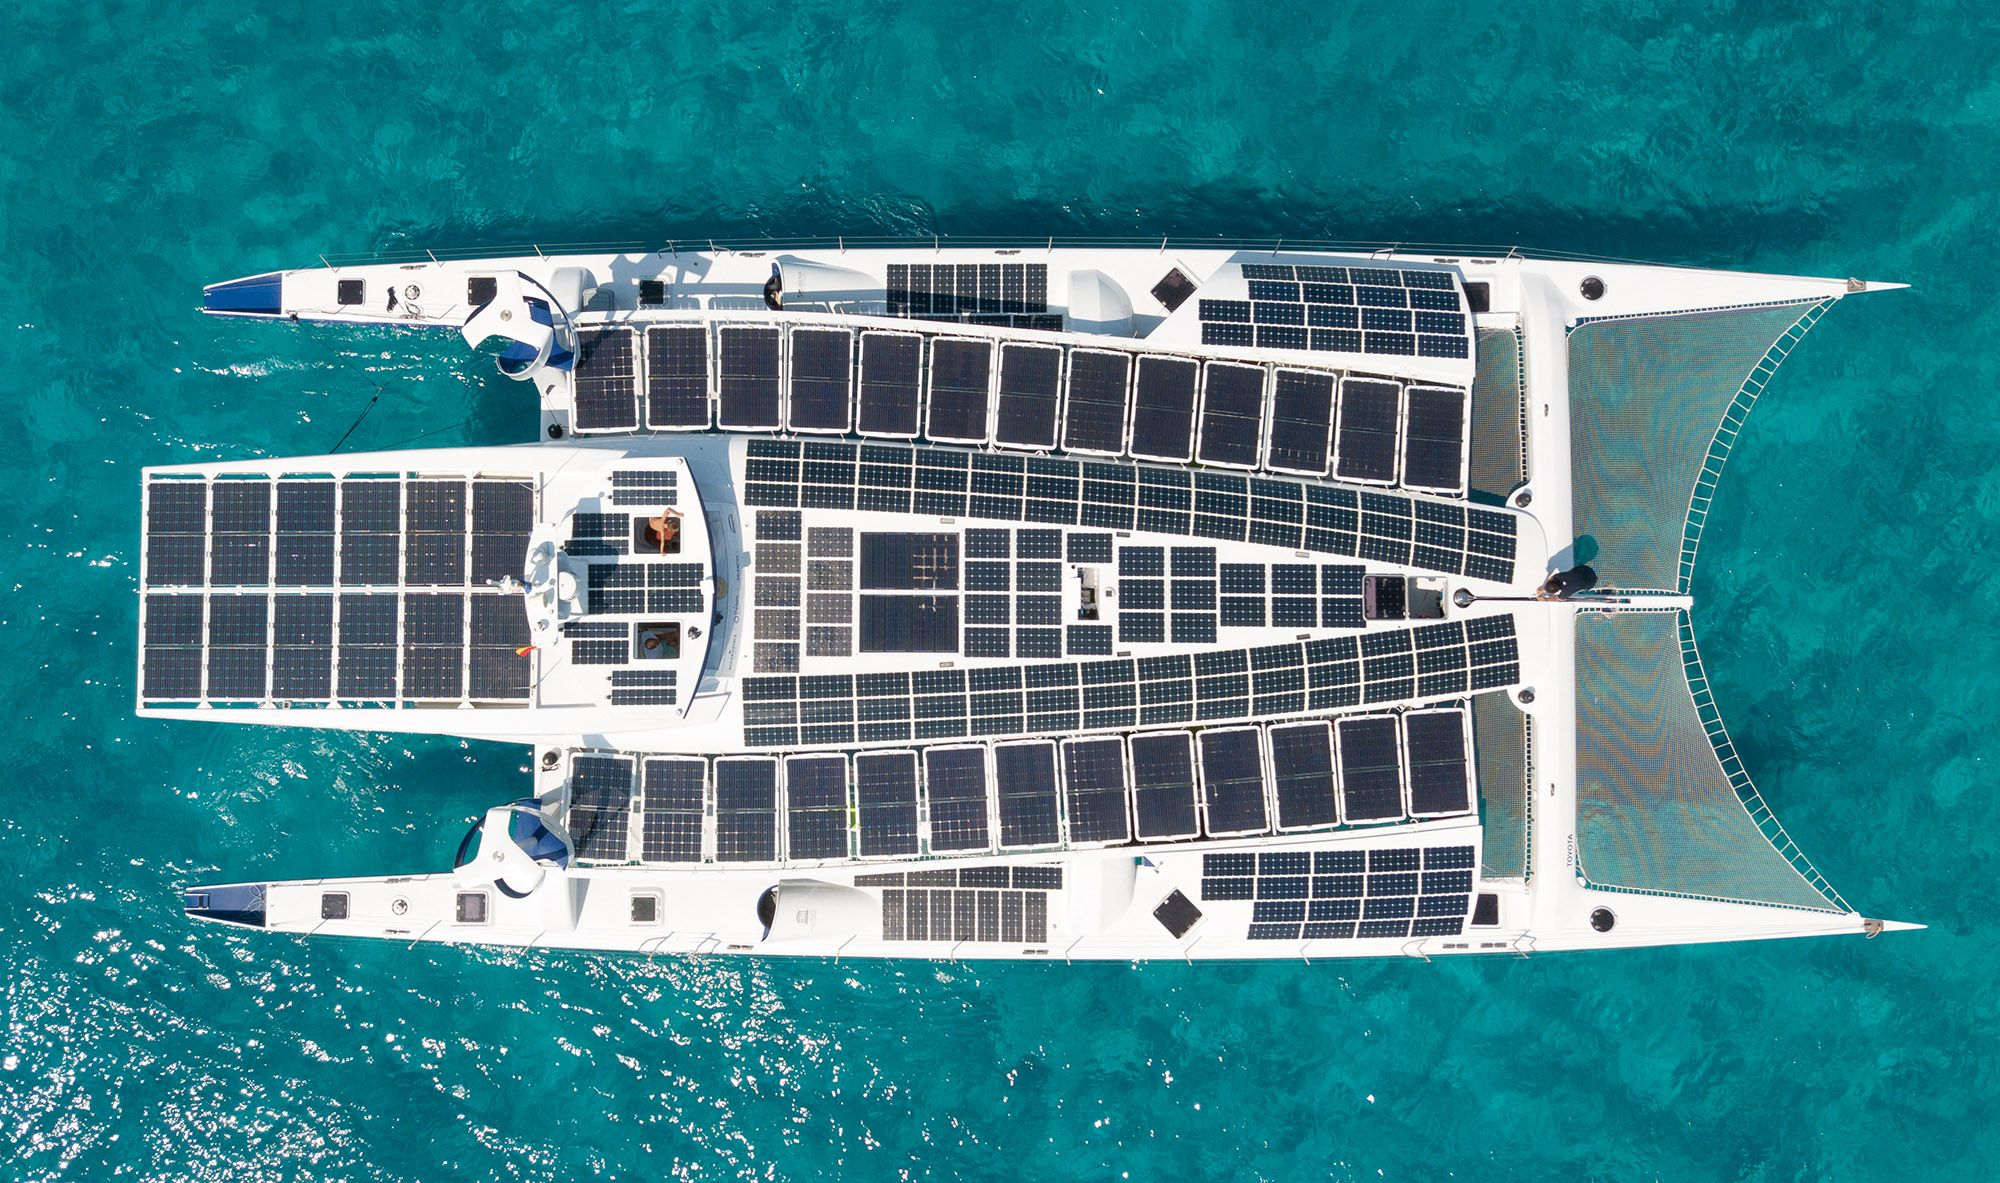 On board: wind, sun and water supply the energy; ©Energy Observer